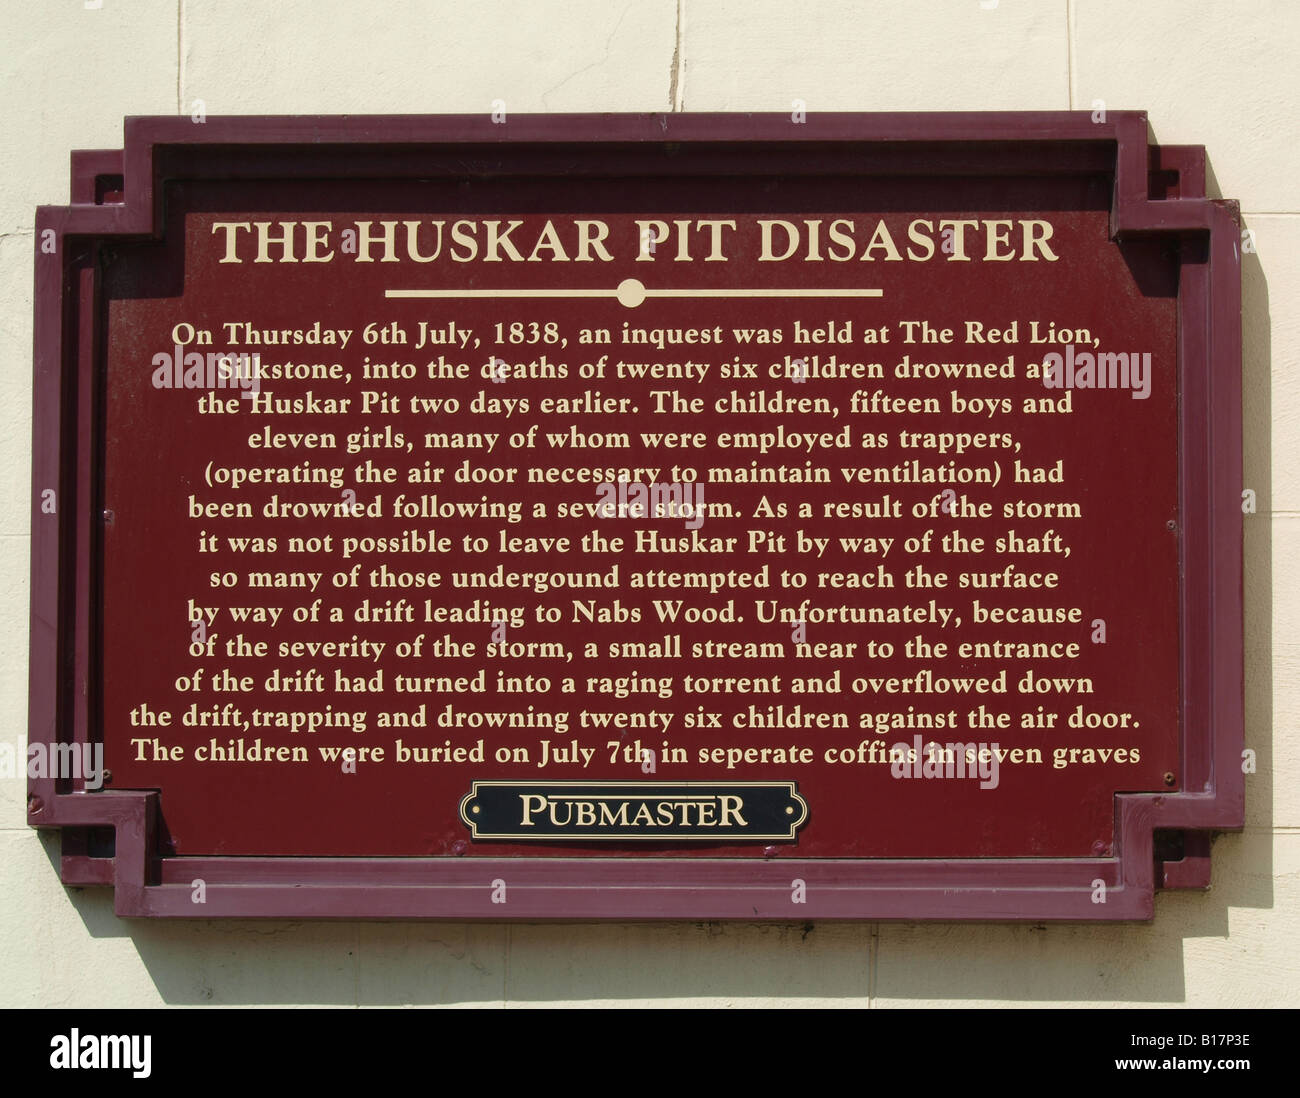 Plaque to commemorate the Huskar Mining Disaster in 1838 Outside wall of the Red Lion Pub - Stock Image